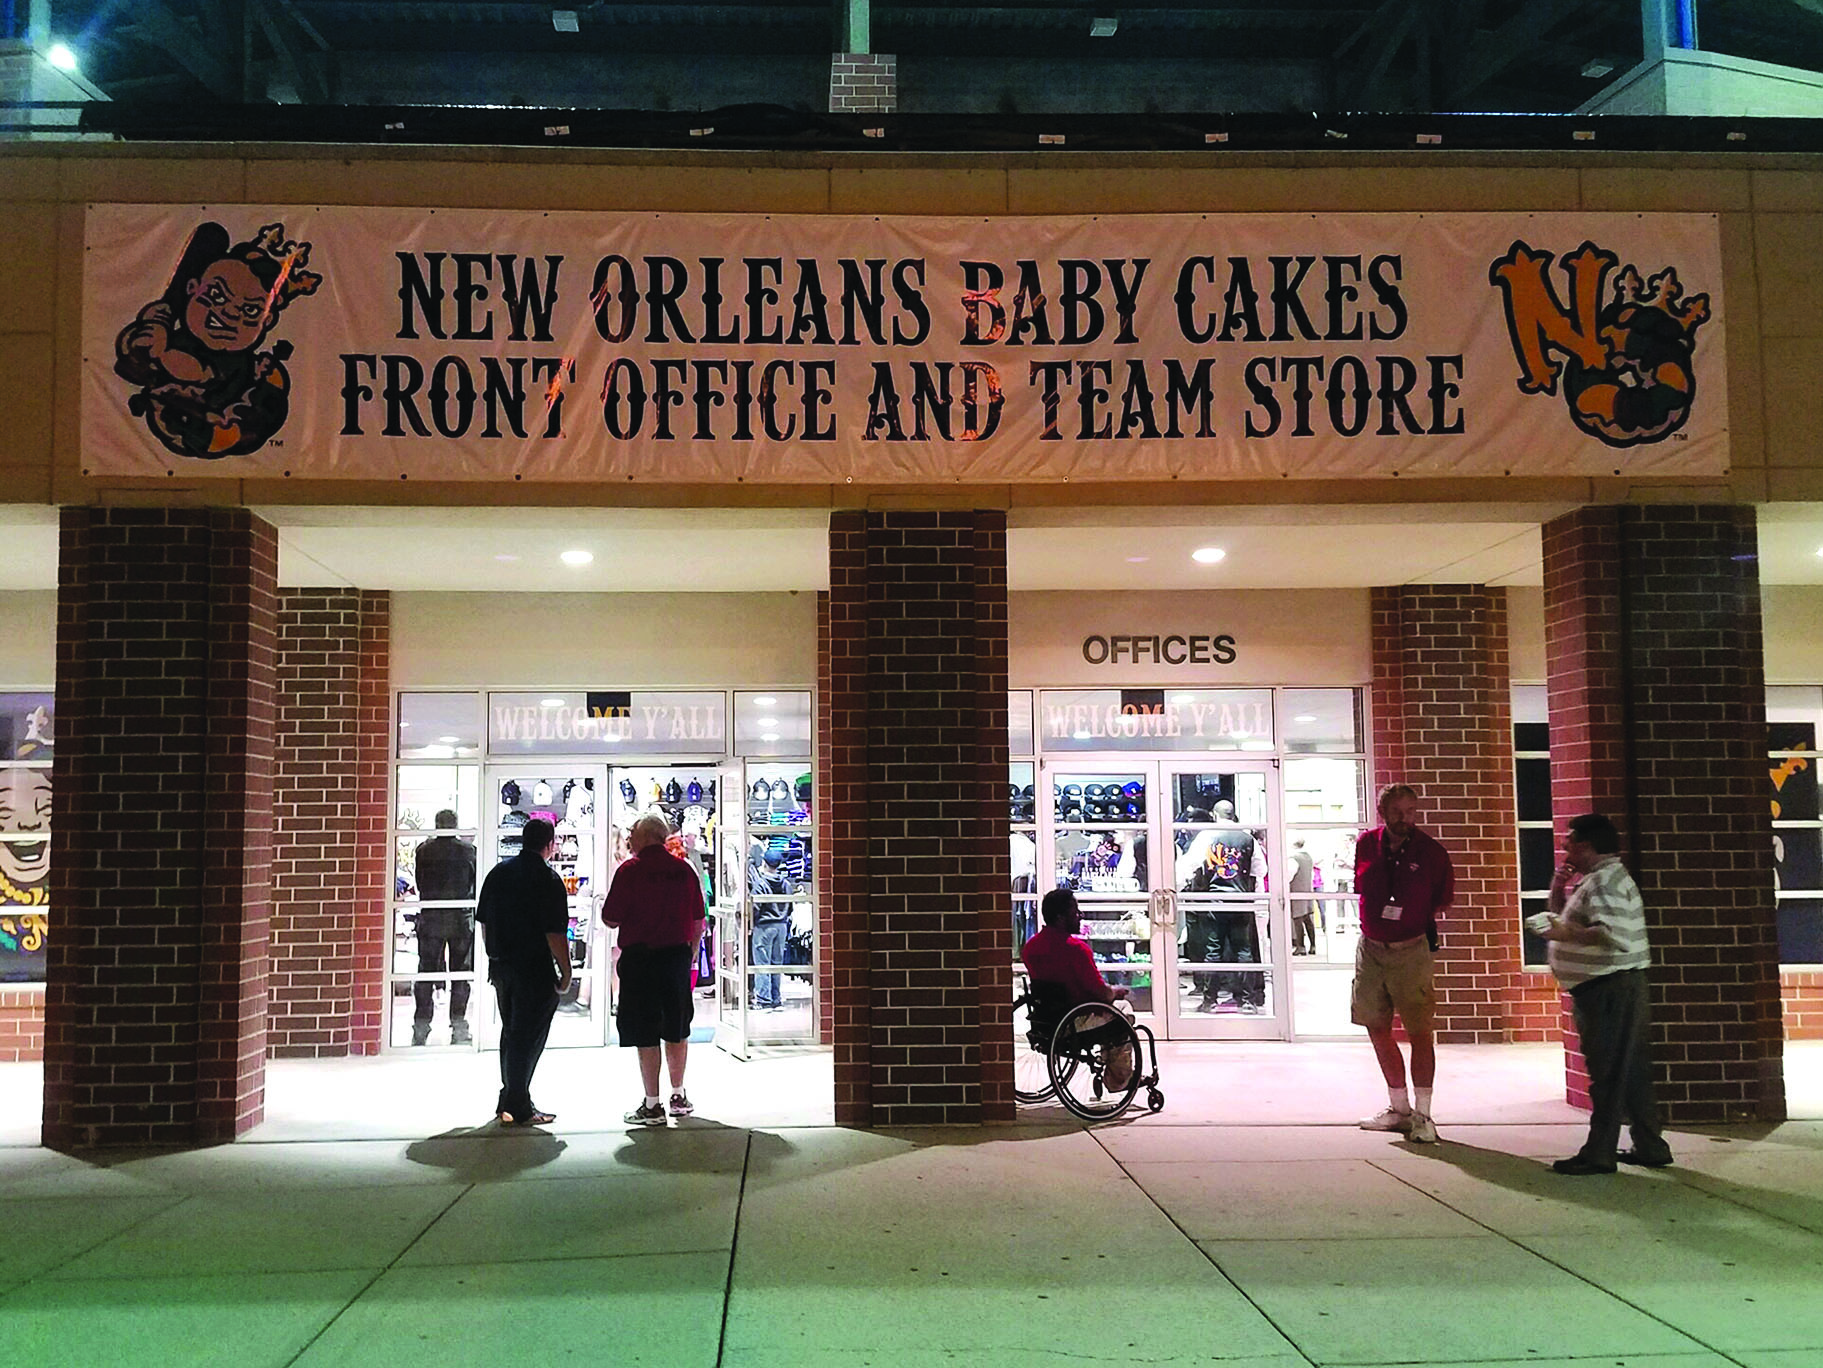 The Baby Cakes front office and merchandise store is located near the front of the stadium. The team announced its new name Nov. 15. Photo credit: Ryan Micklin